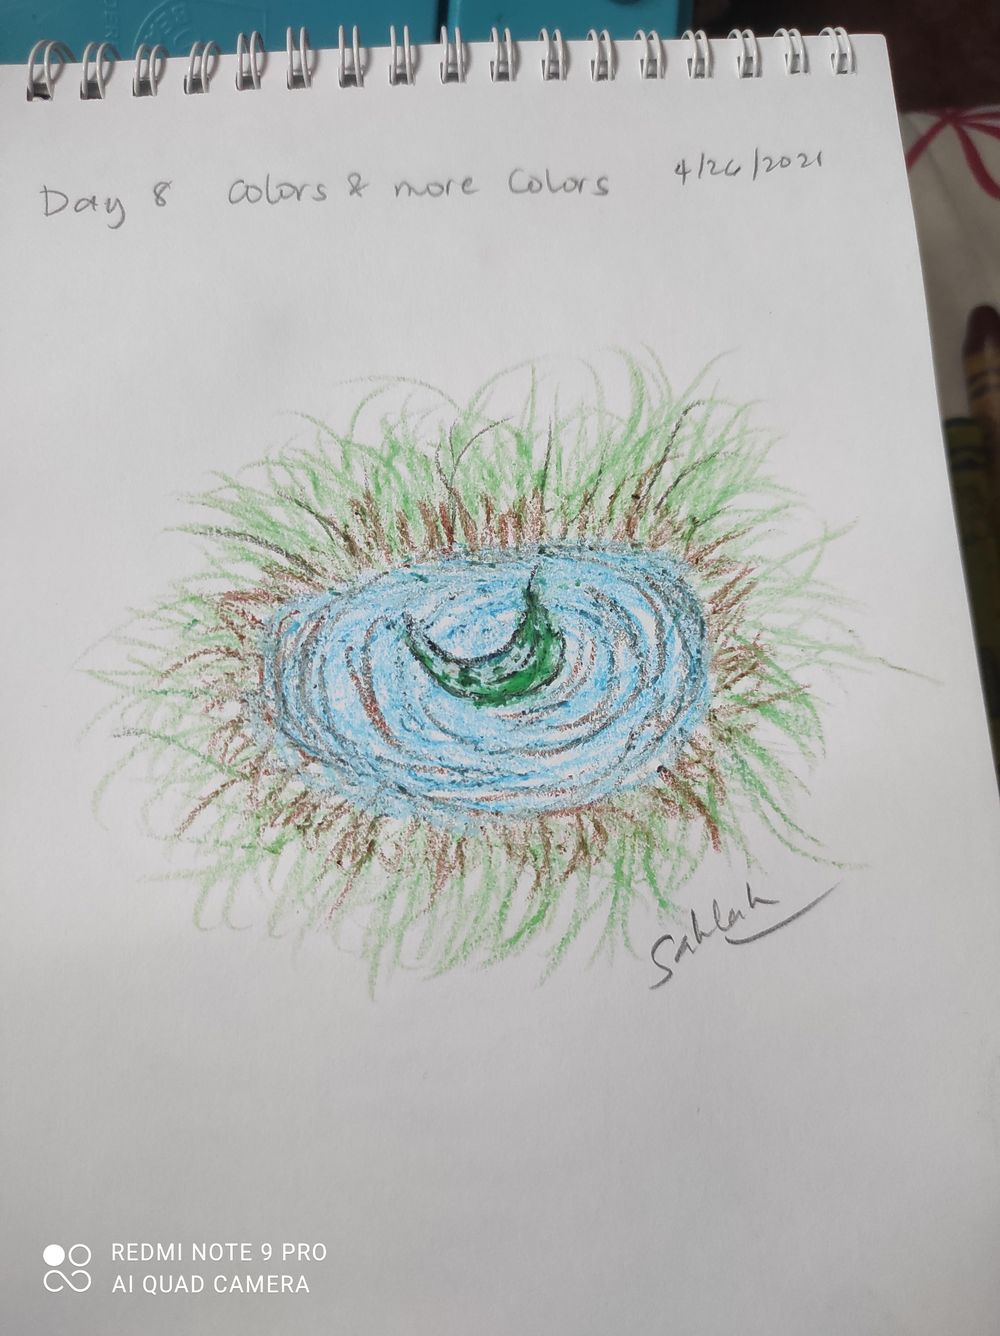 Day 14 day art challenge - image 6 - student project